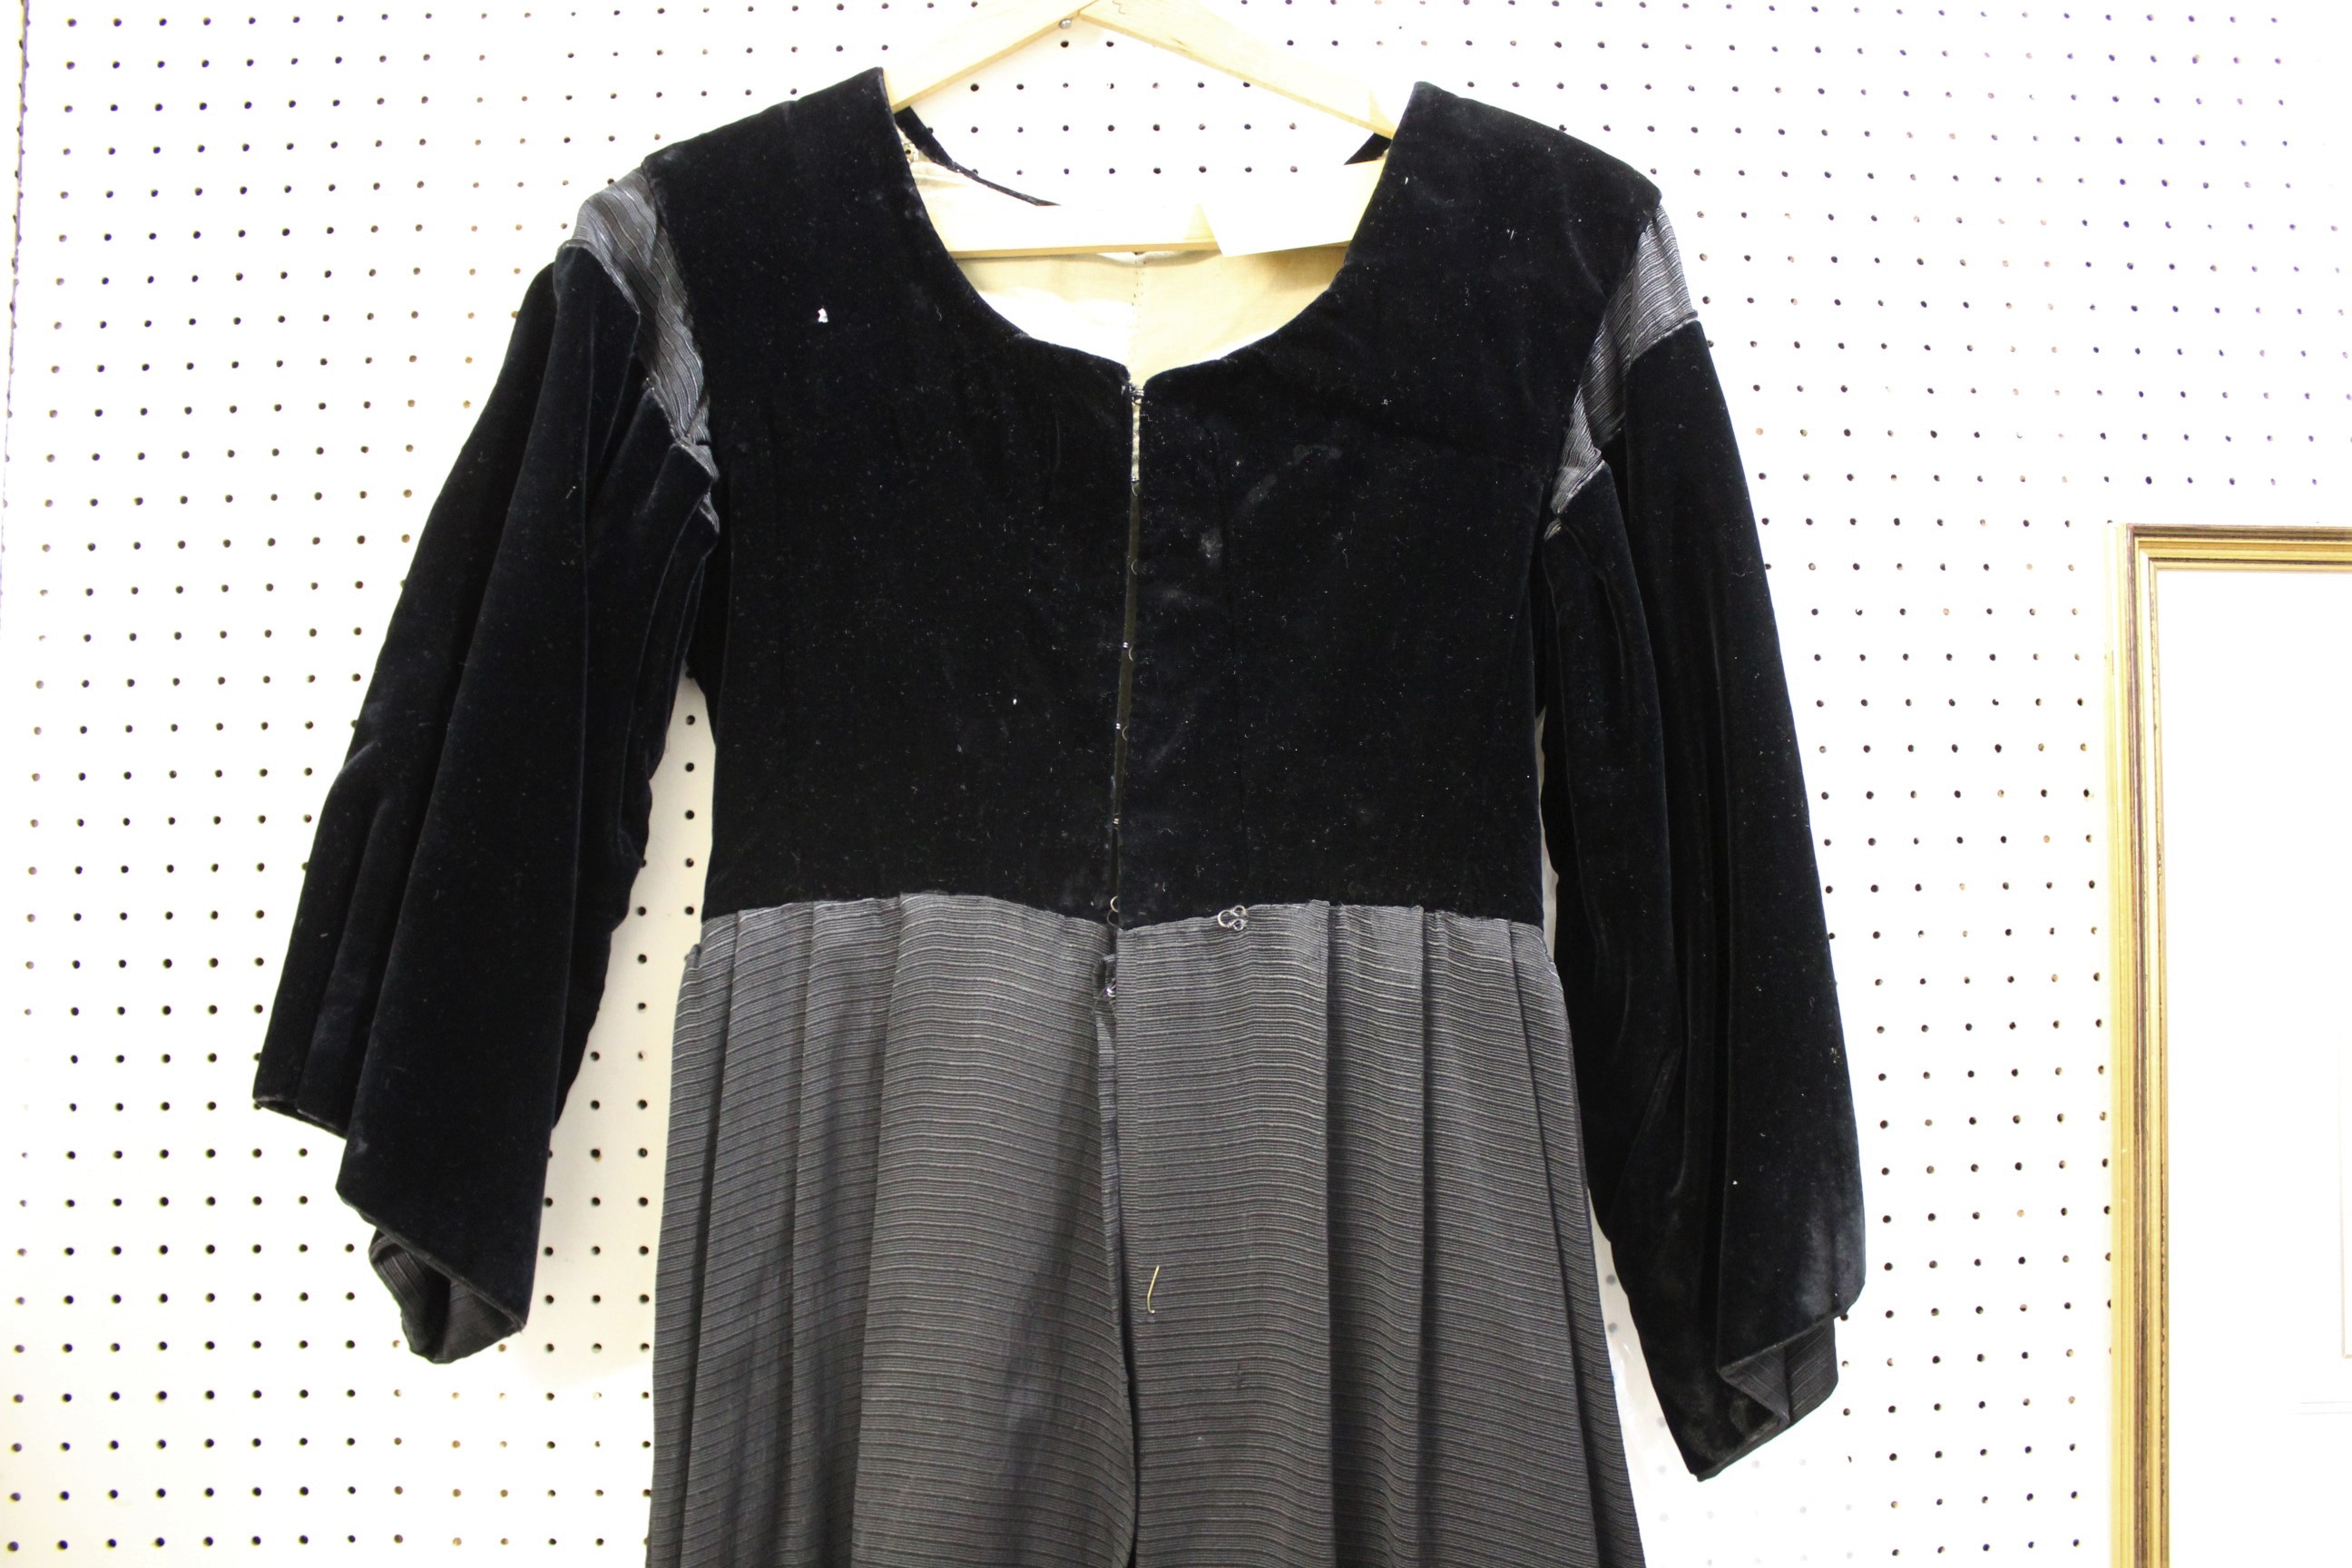 Lot 1892 - BRETON VELVET DRESS an early 20thc black velvet and grosgrain dress with lined tailored bodice,